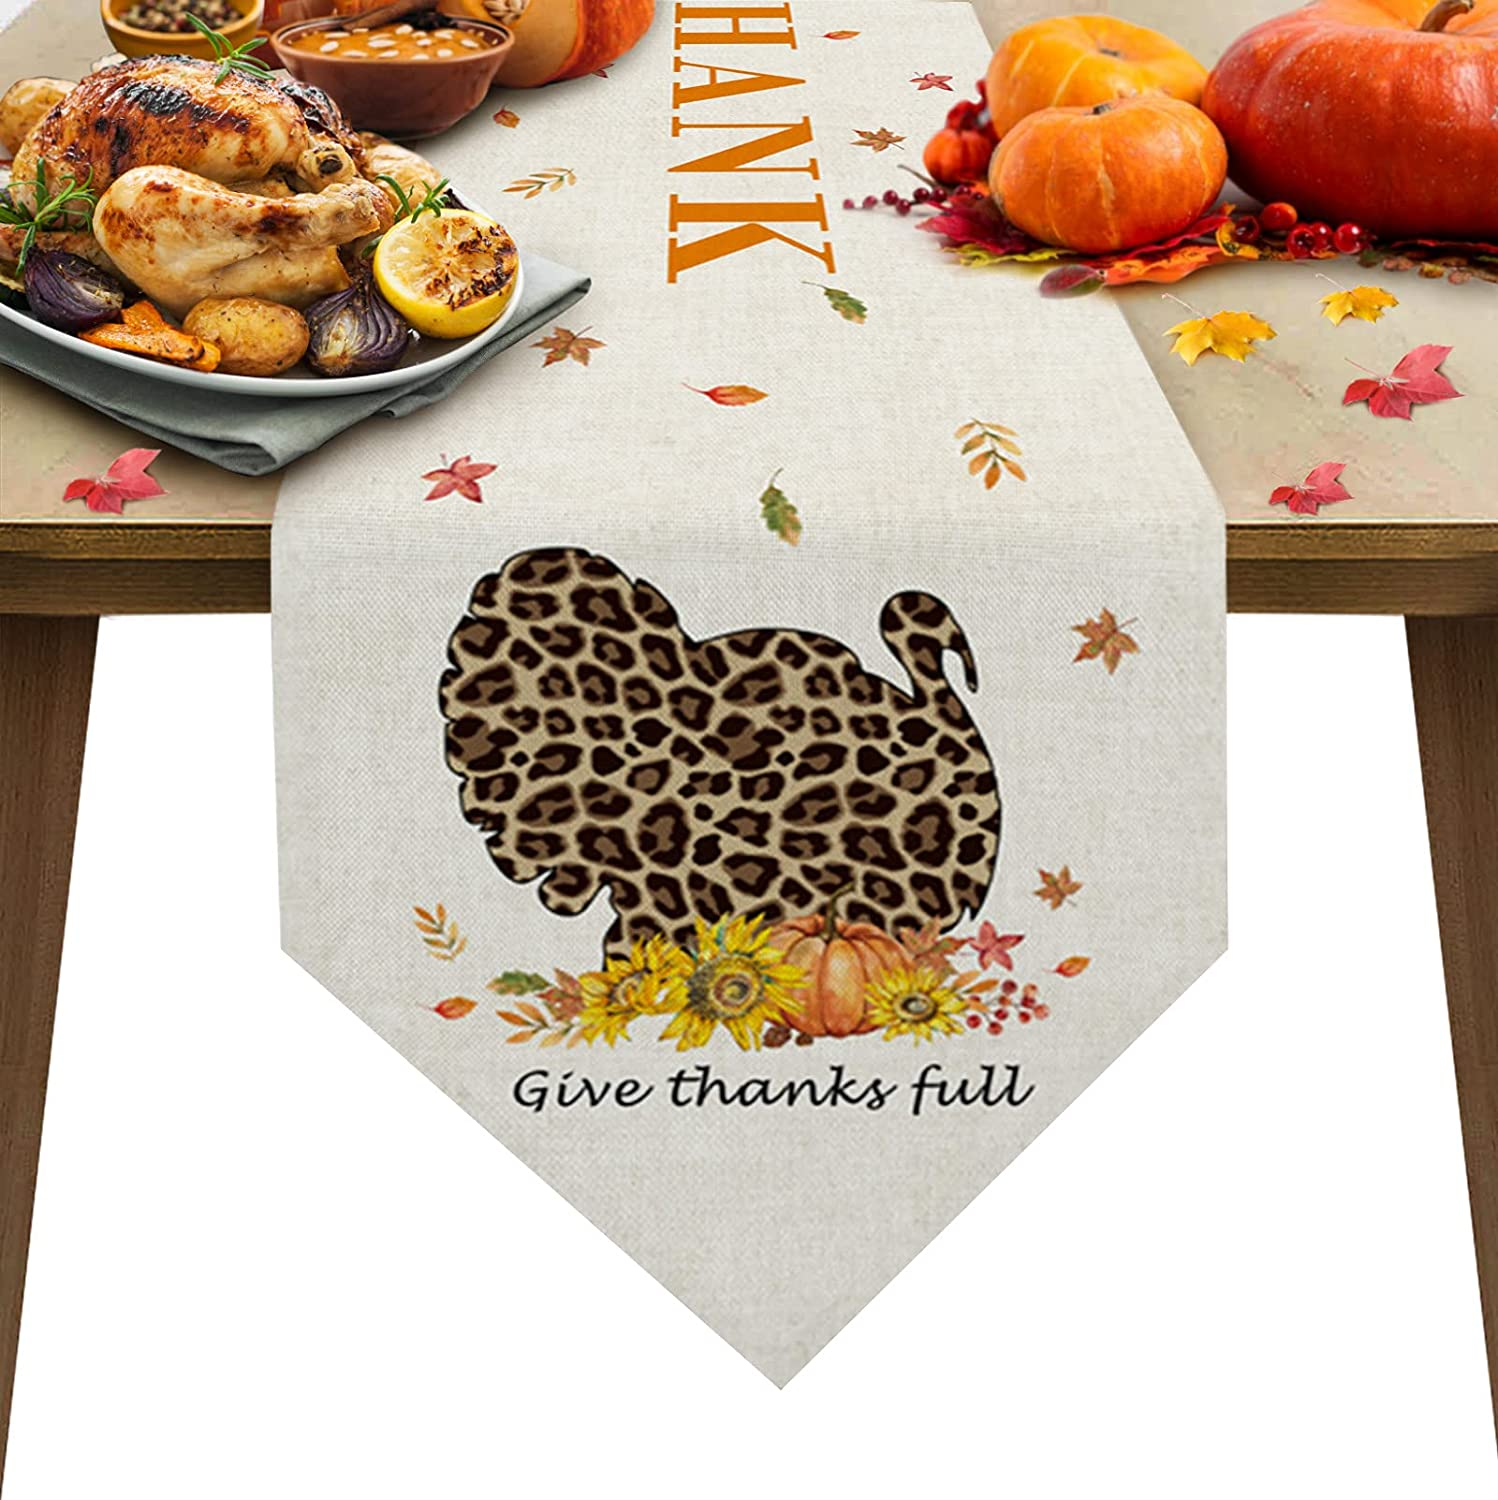 Triangle Super sale period limited Cotton Linen Table Runners Inches Long 120 Thanksgivin Oklahoma City Mall